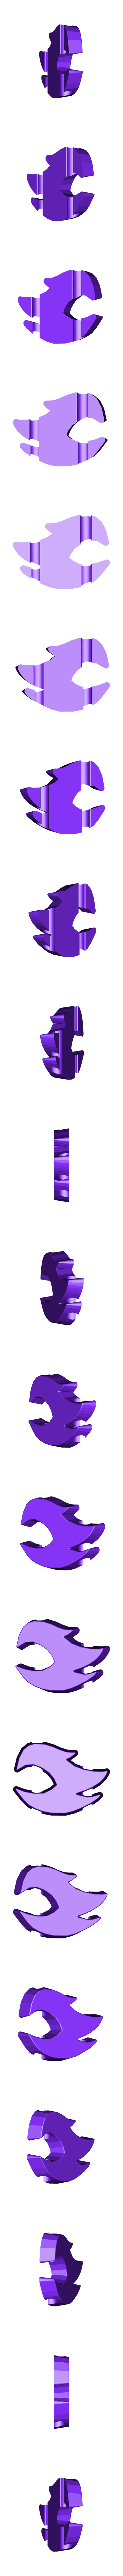 fire.stl Download free STL file Ladder Peg Toy 3000: Codename Overkill • 3D printing object, ecoiras